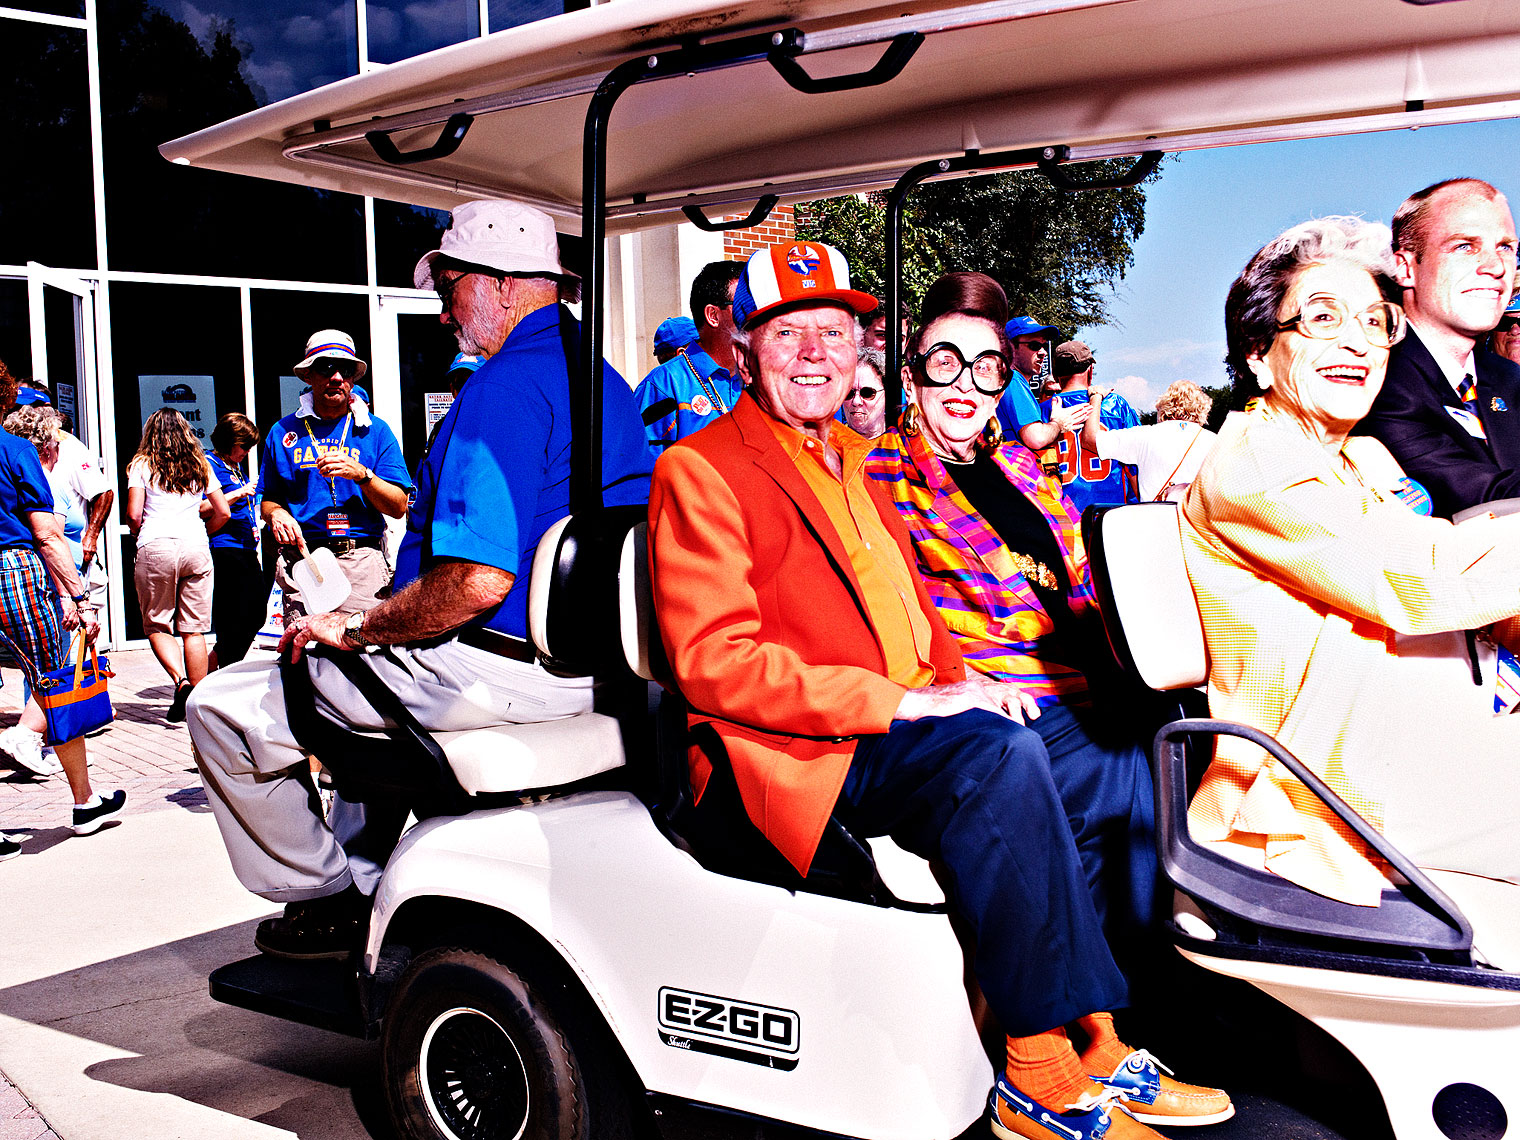 Bob-Croslin-Florida-Photographer-University-of-Florida-Gator-Football-weird-Florida.jpg